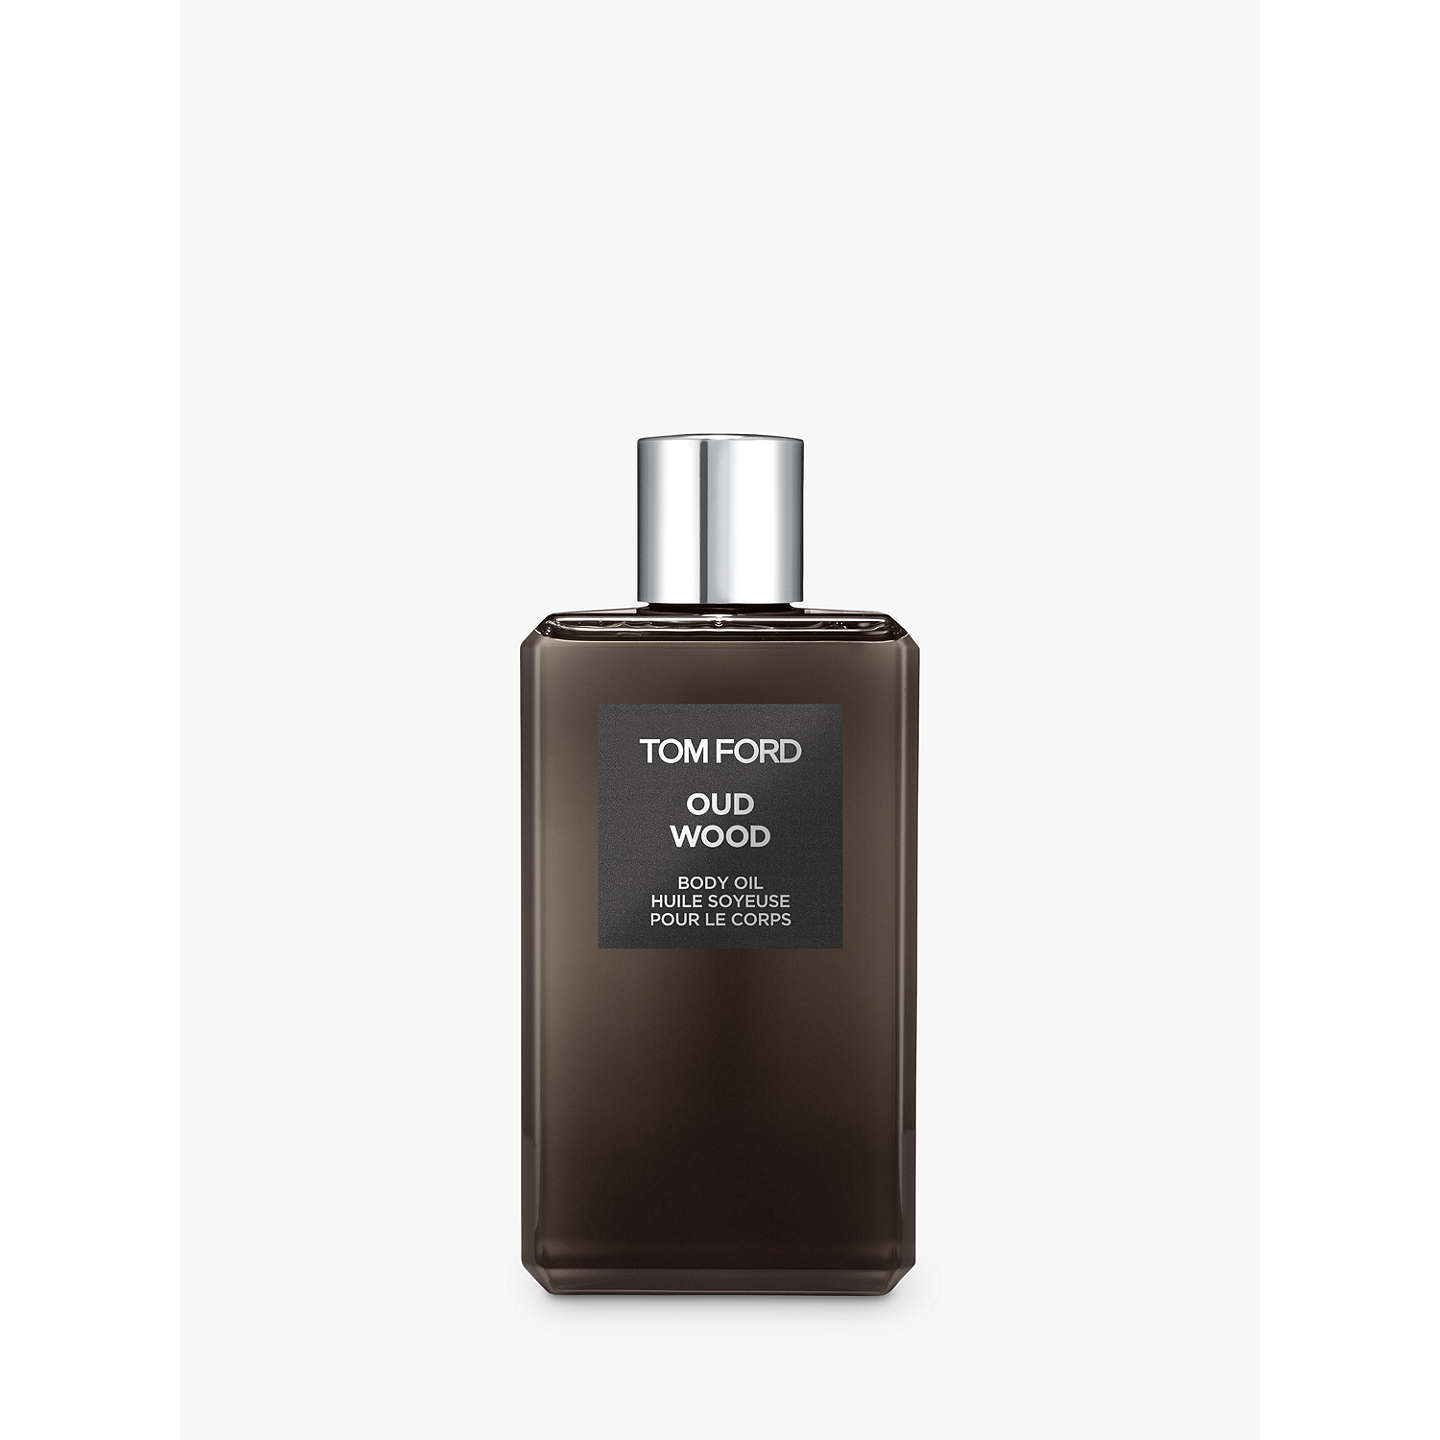 TOM FORD Private Blend Oud Wood Body Oil 250ml at John Lewis